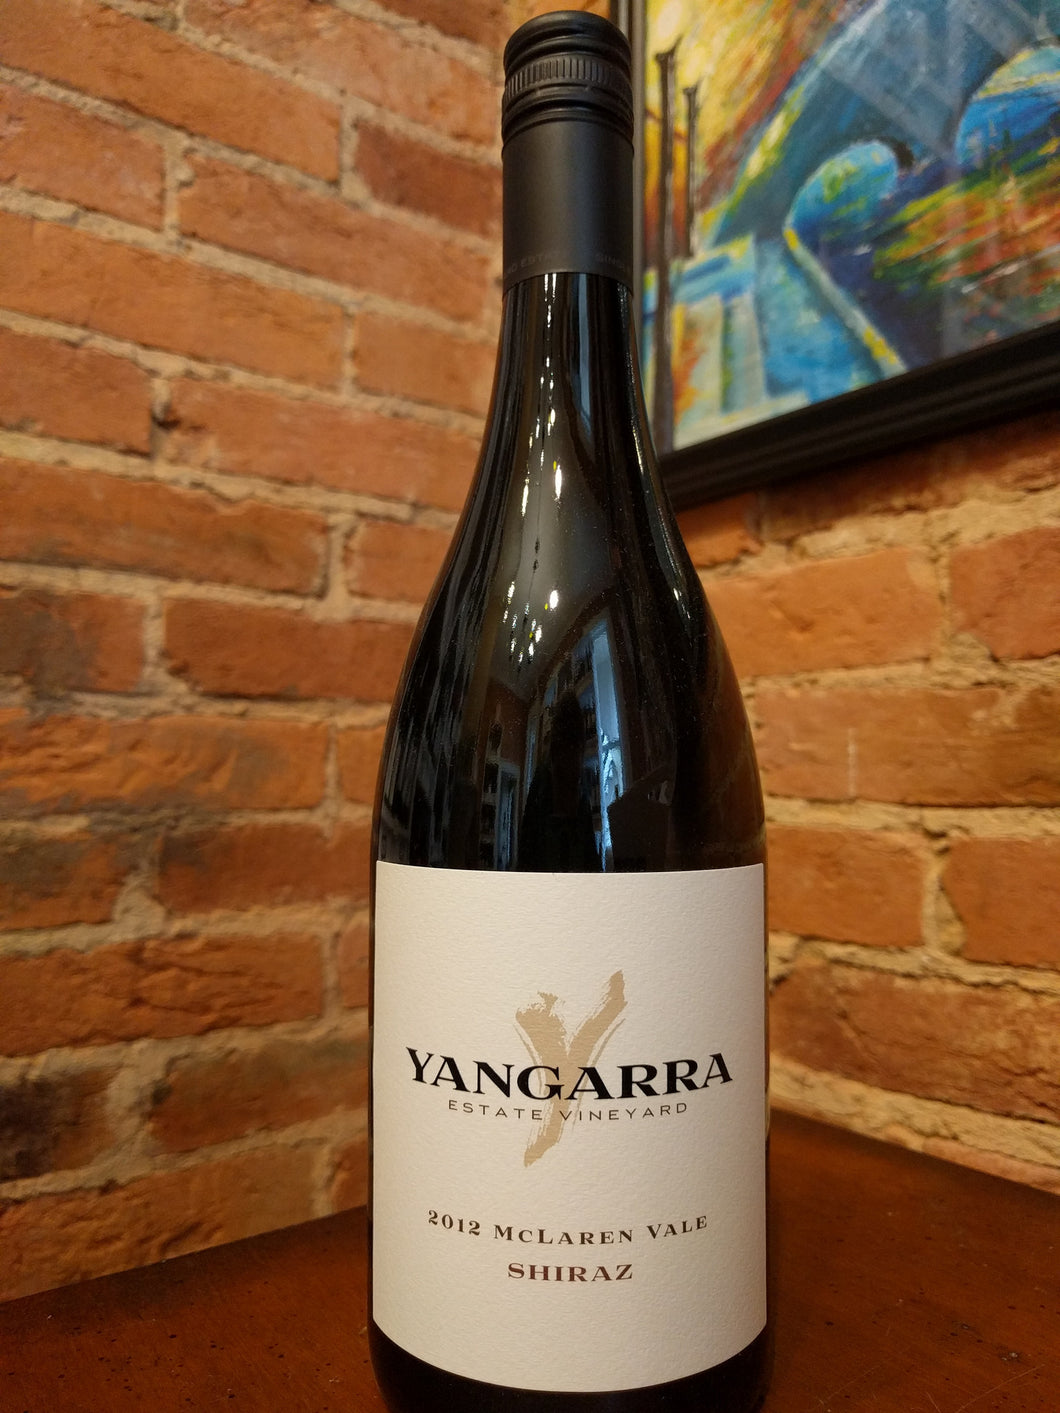 Yangarra Estate, Shiraz (2012)